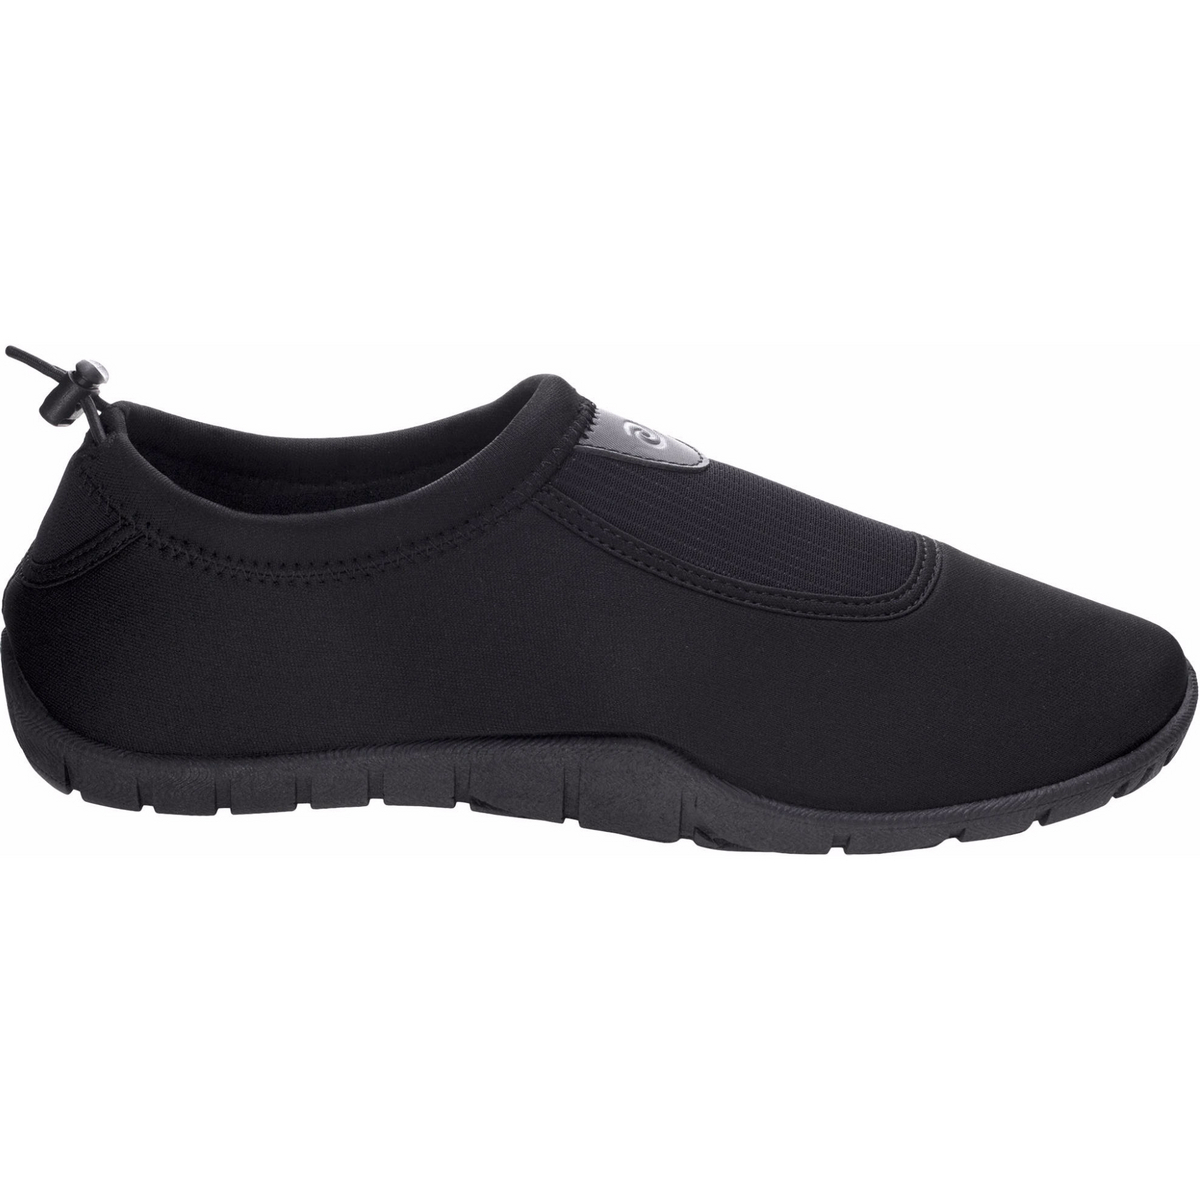 Women's Hilo Water Shoes